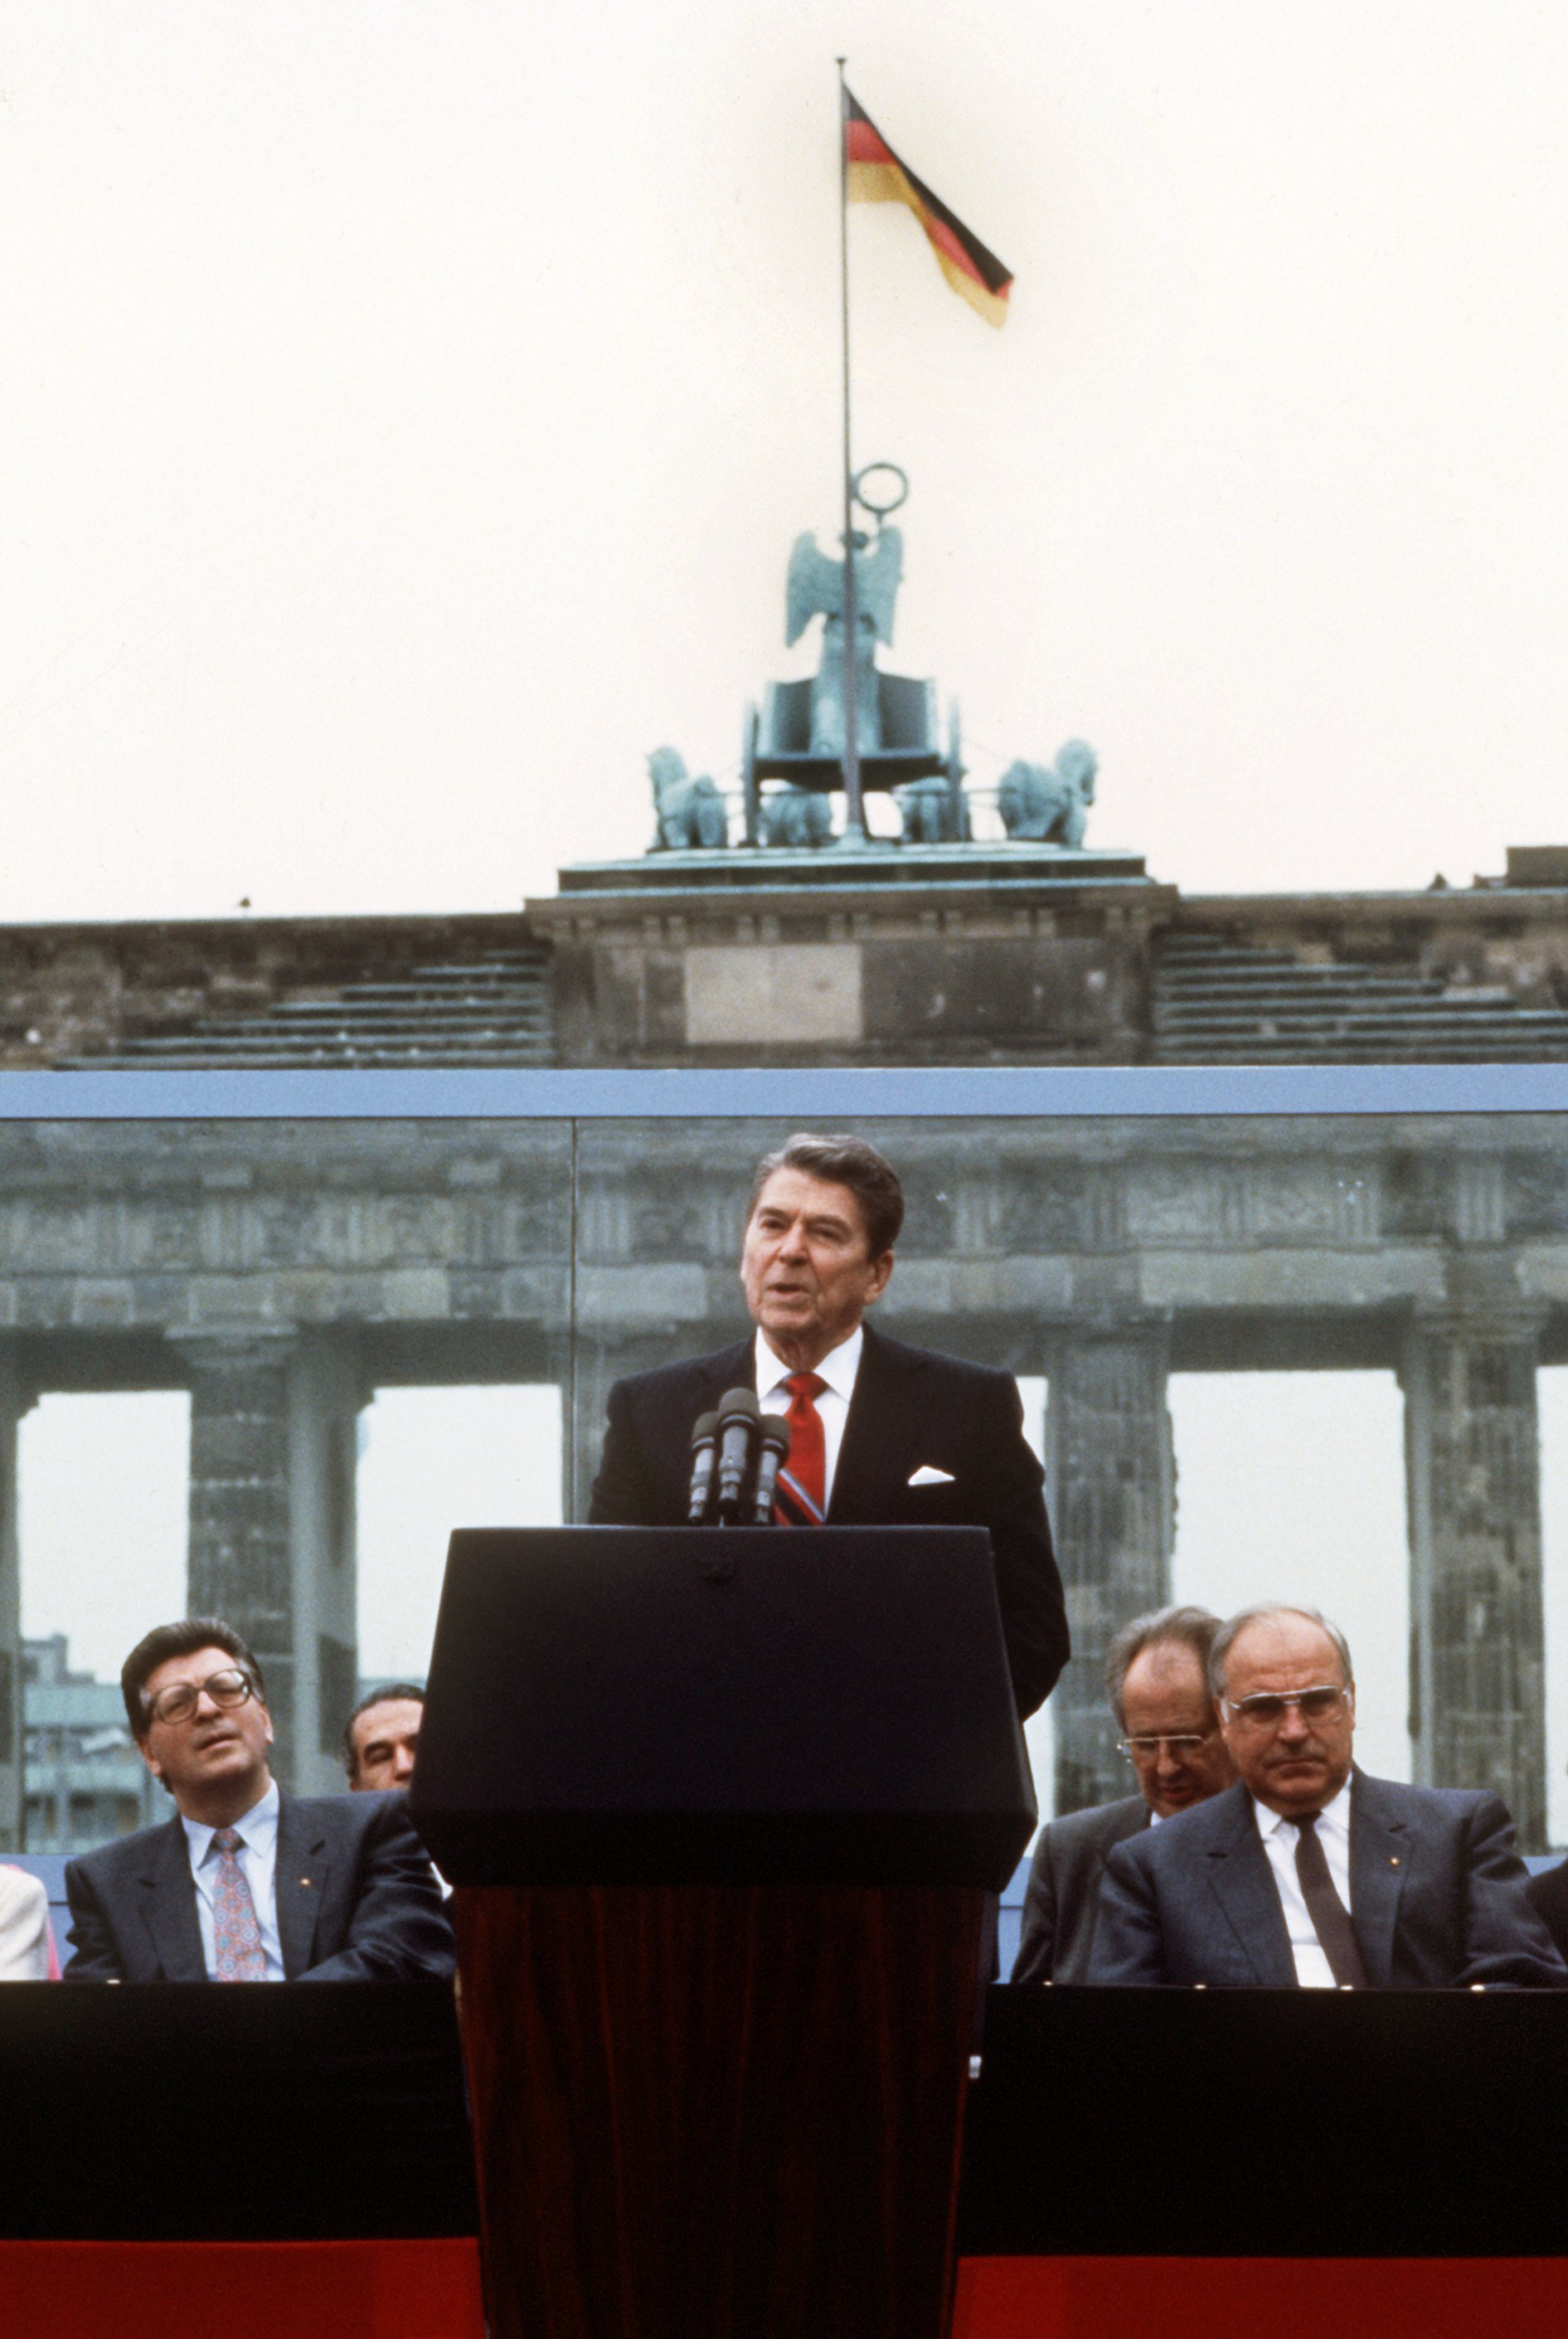 president-reagan-speaking-at-brandenburg-gate - Ronald Reagan ...